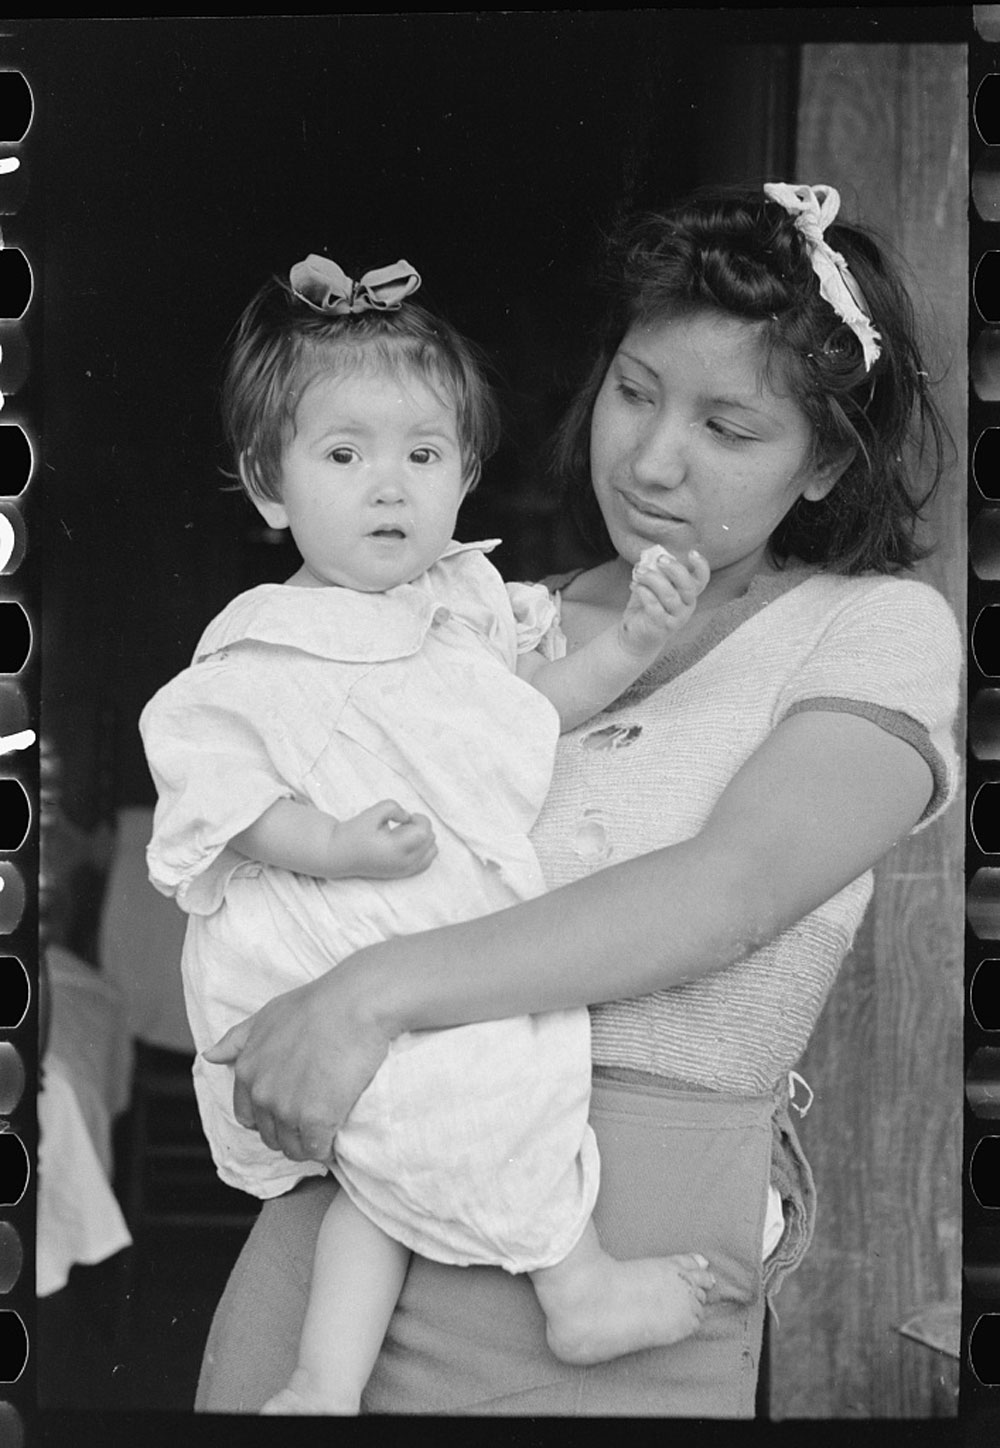 Mexican Baby and her Sister in San Antonio, Texas, March 1939